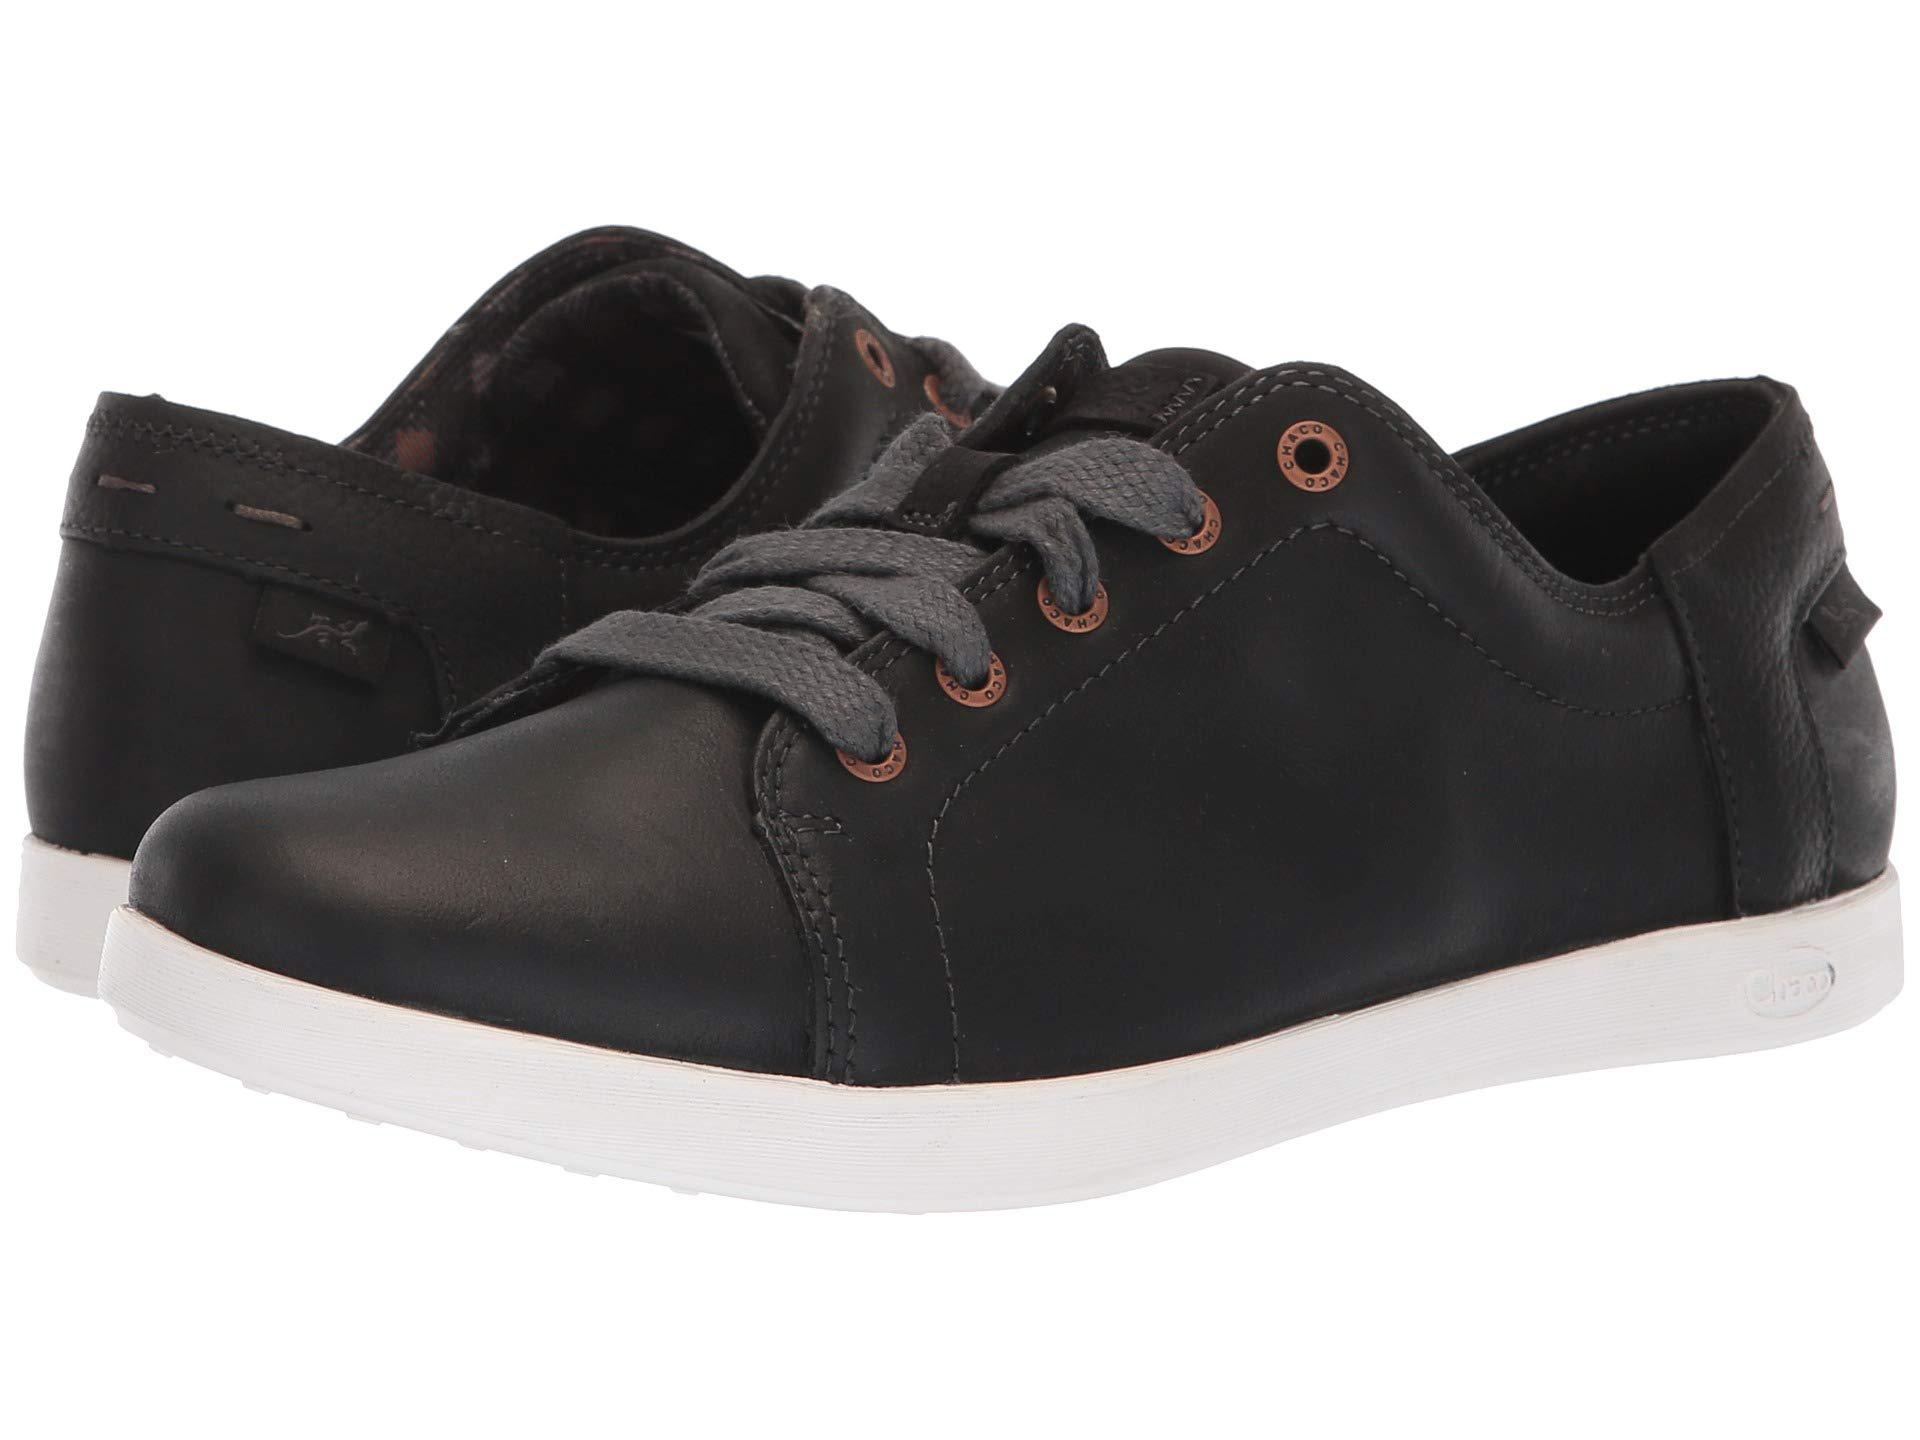 6cac5224a241 Lyst - Chaco Ionia Lace Leather (black) Women s Shoes in Black